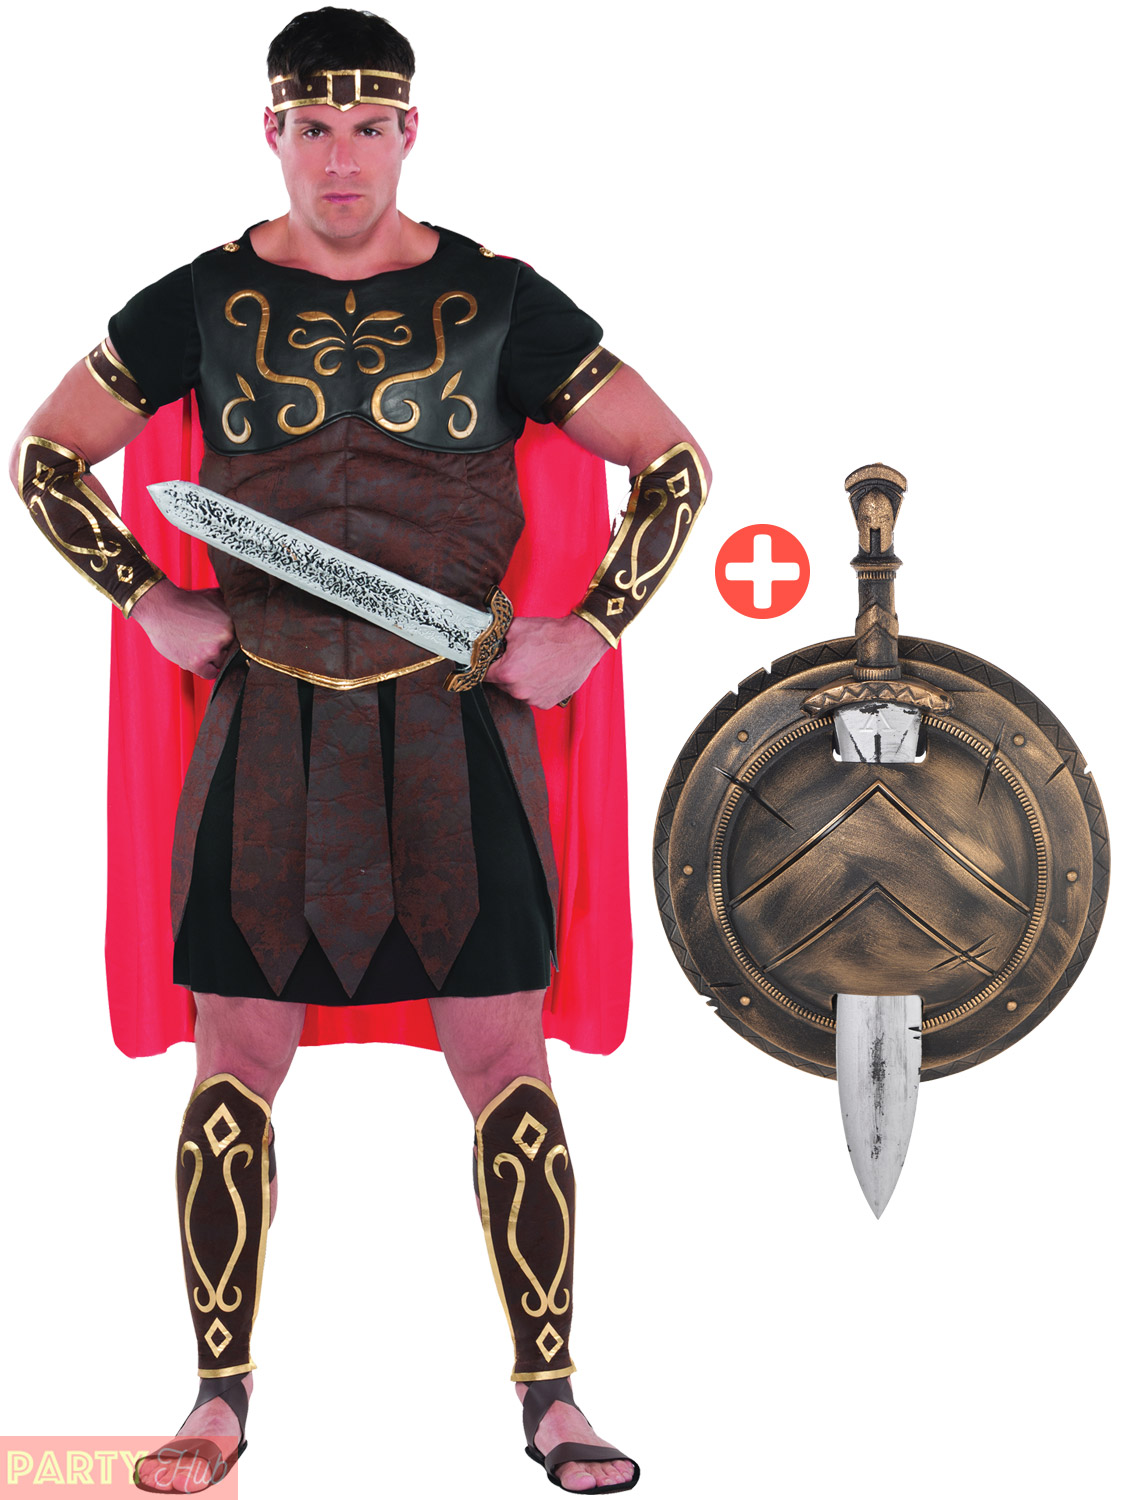 Mens-Roman-Centurion-Costume-Adult-Gladiator-Spartan-Warrior-  sc 1 st  eBay & Mens Roman Centurion Costume Adult Gladiator Spartan Warrior Fancy ...